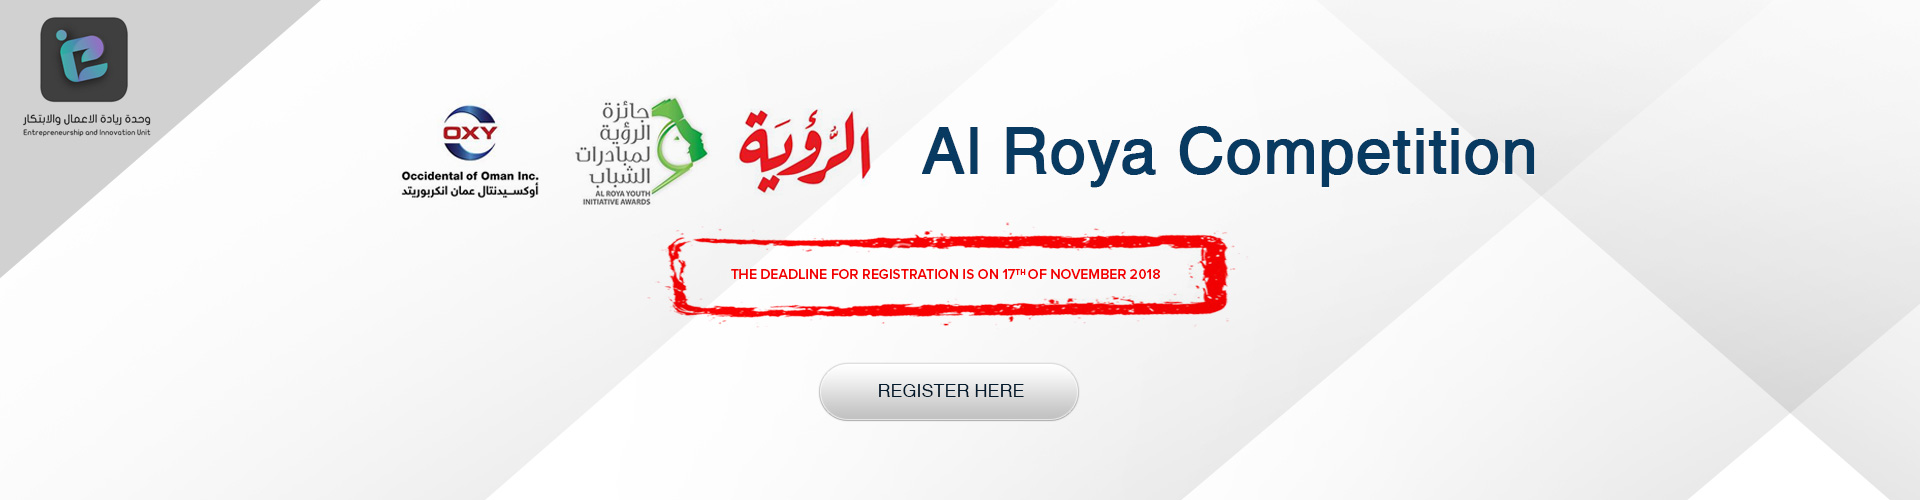 Al Roya Competition